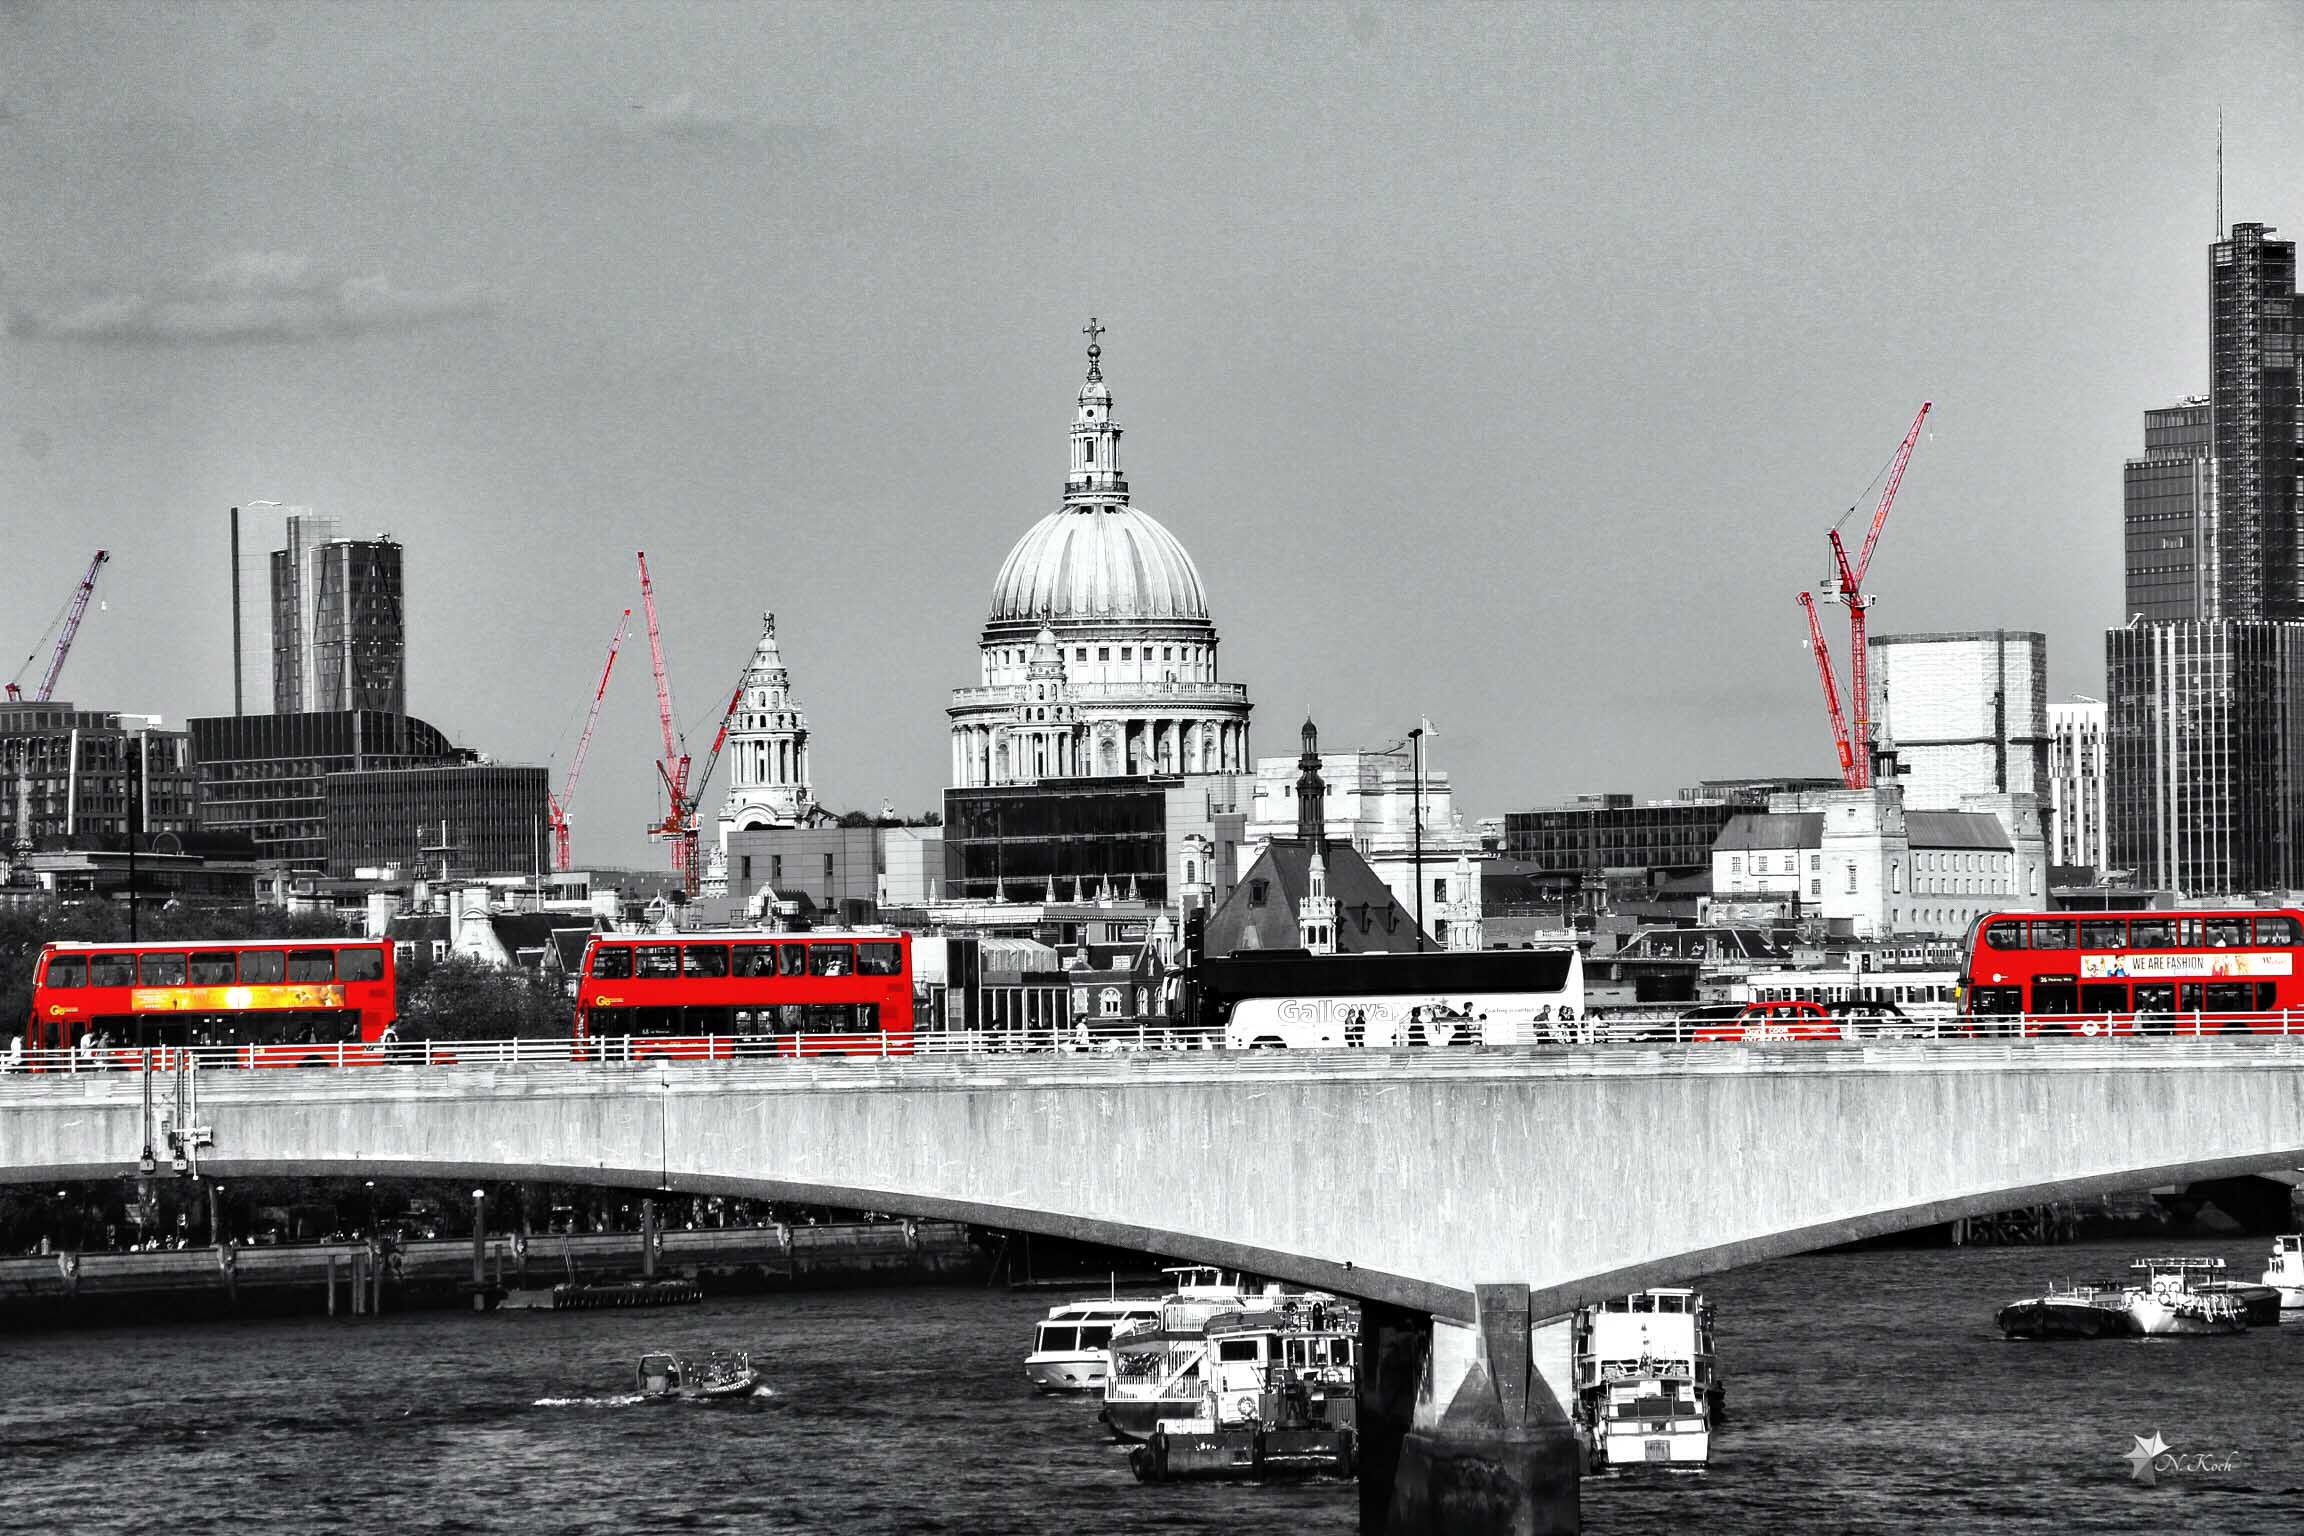 2014, London | Red buses